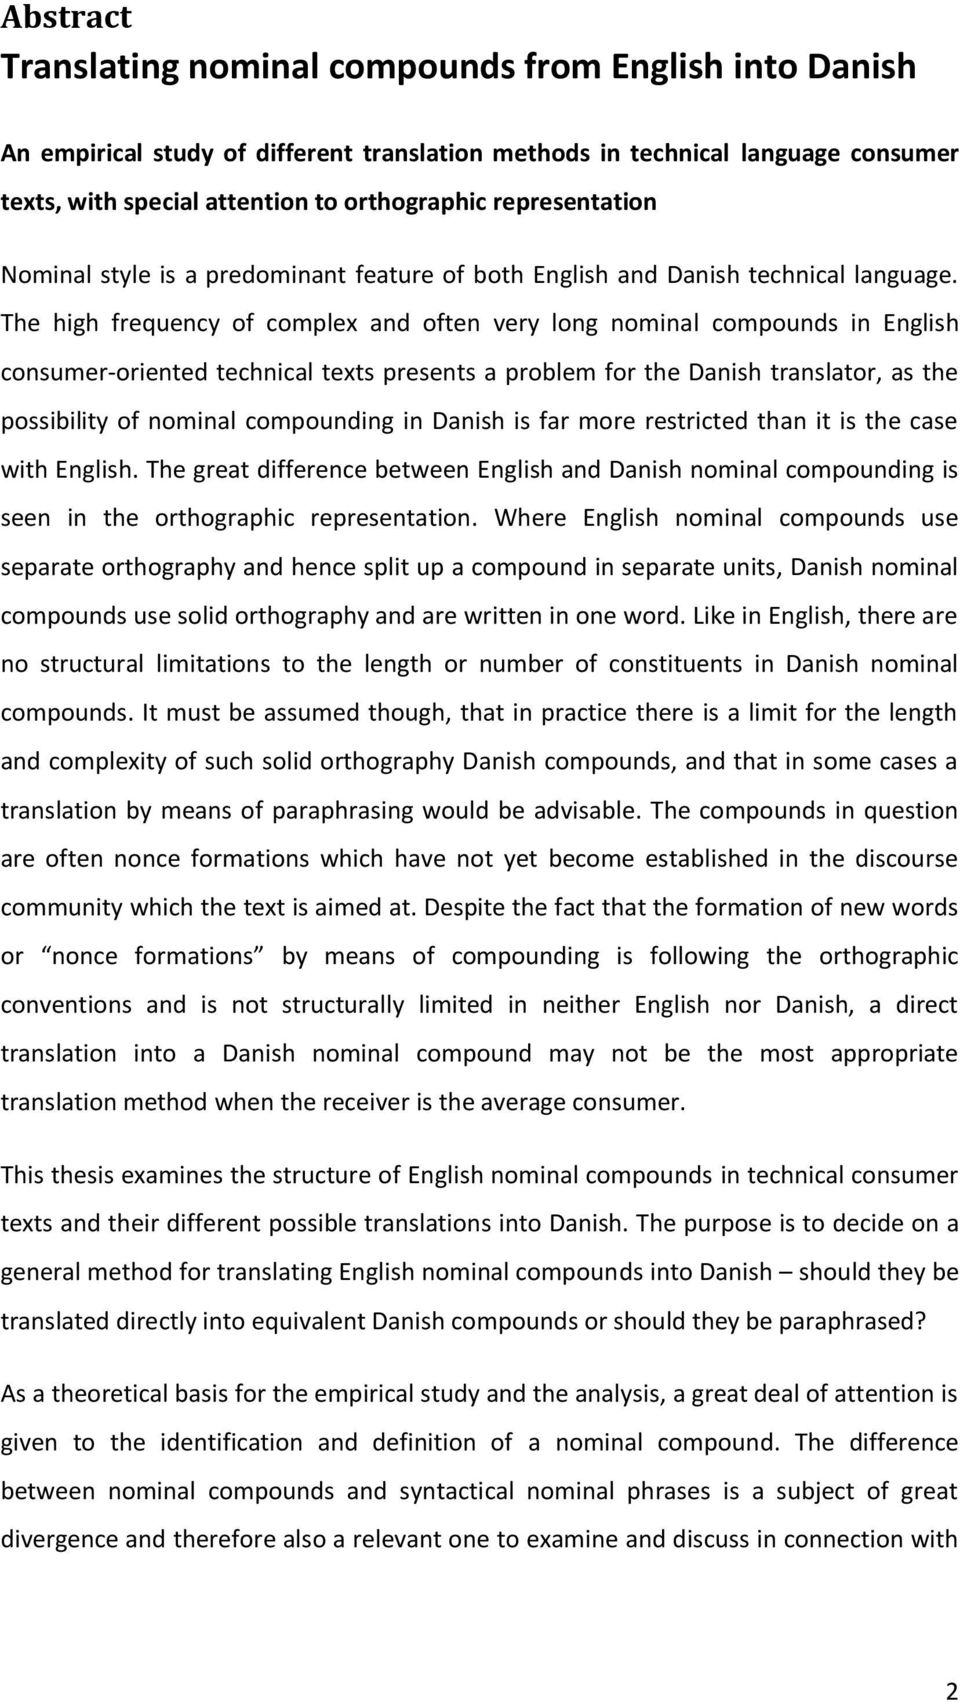 The high frequency of complex and often very long nominal compounds in English consumer-oriented technical texts presents a problem for the Danish translator, as the possibility of nominal